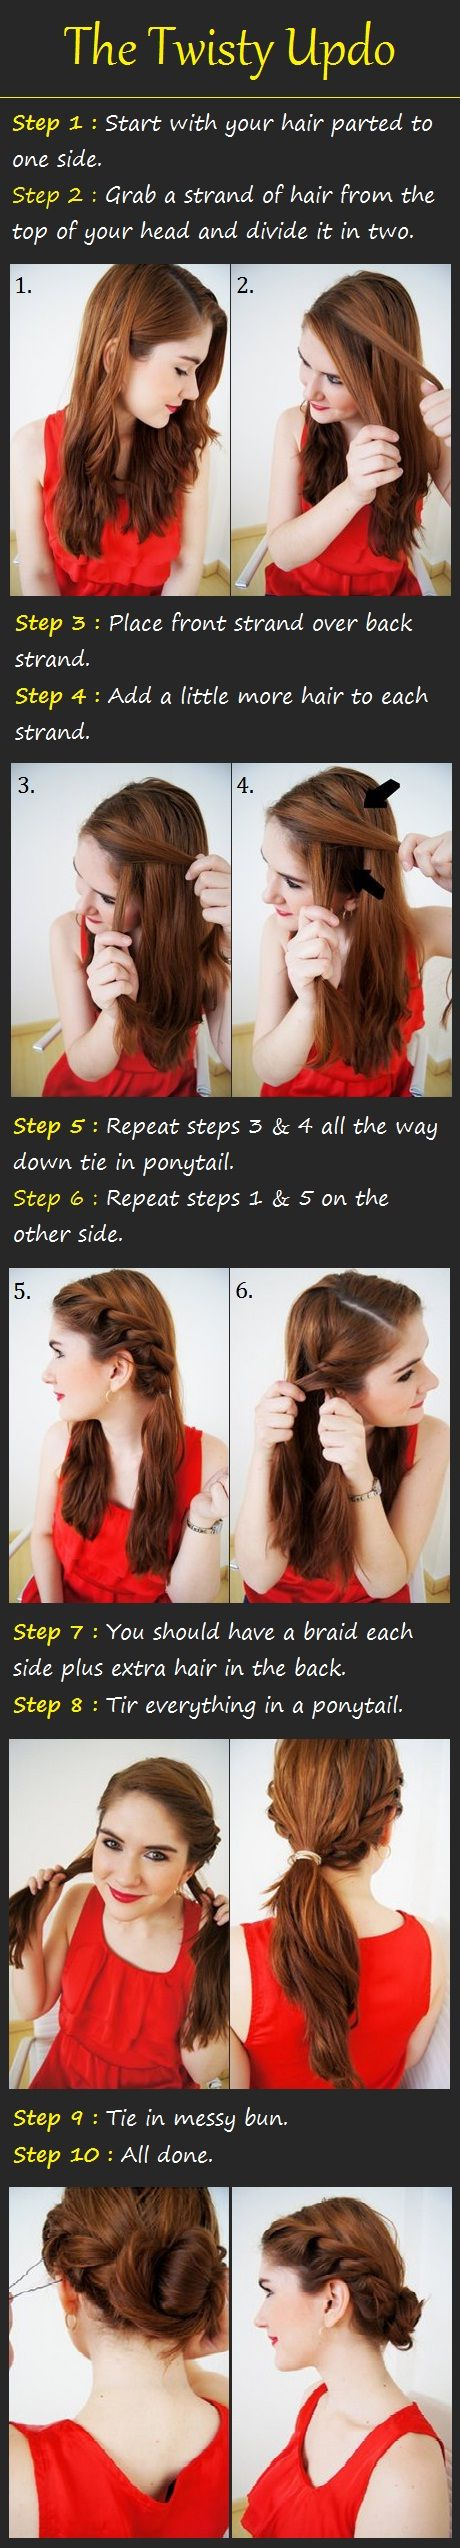 literally 100s of hair tutorials! - The Twisty Updo Tutorial